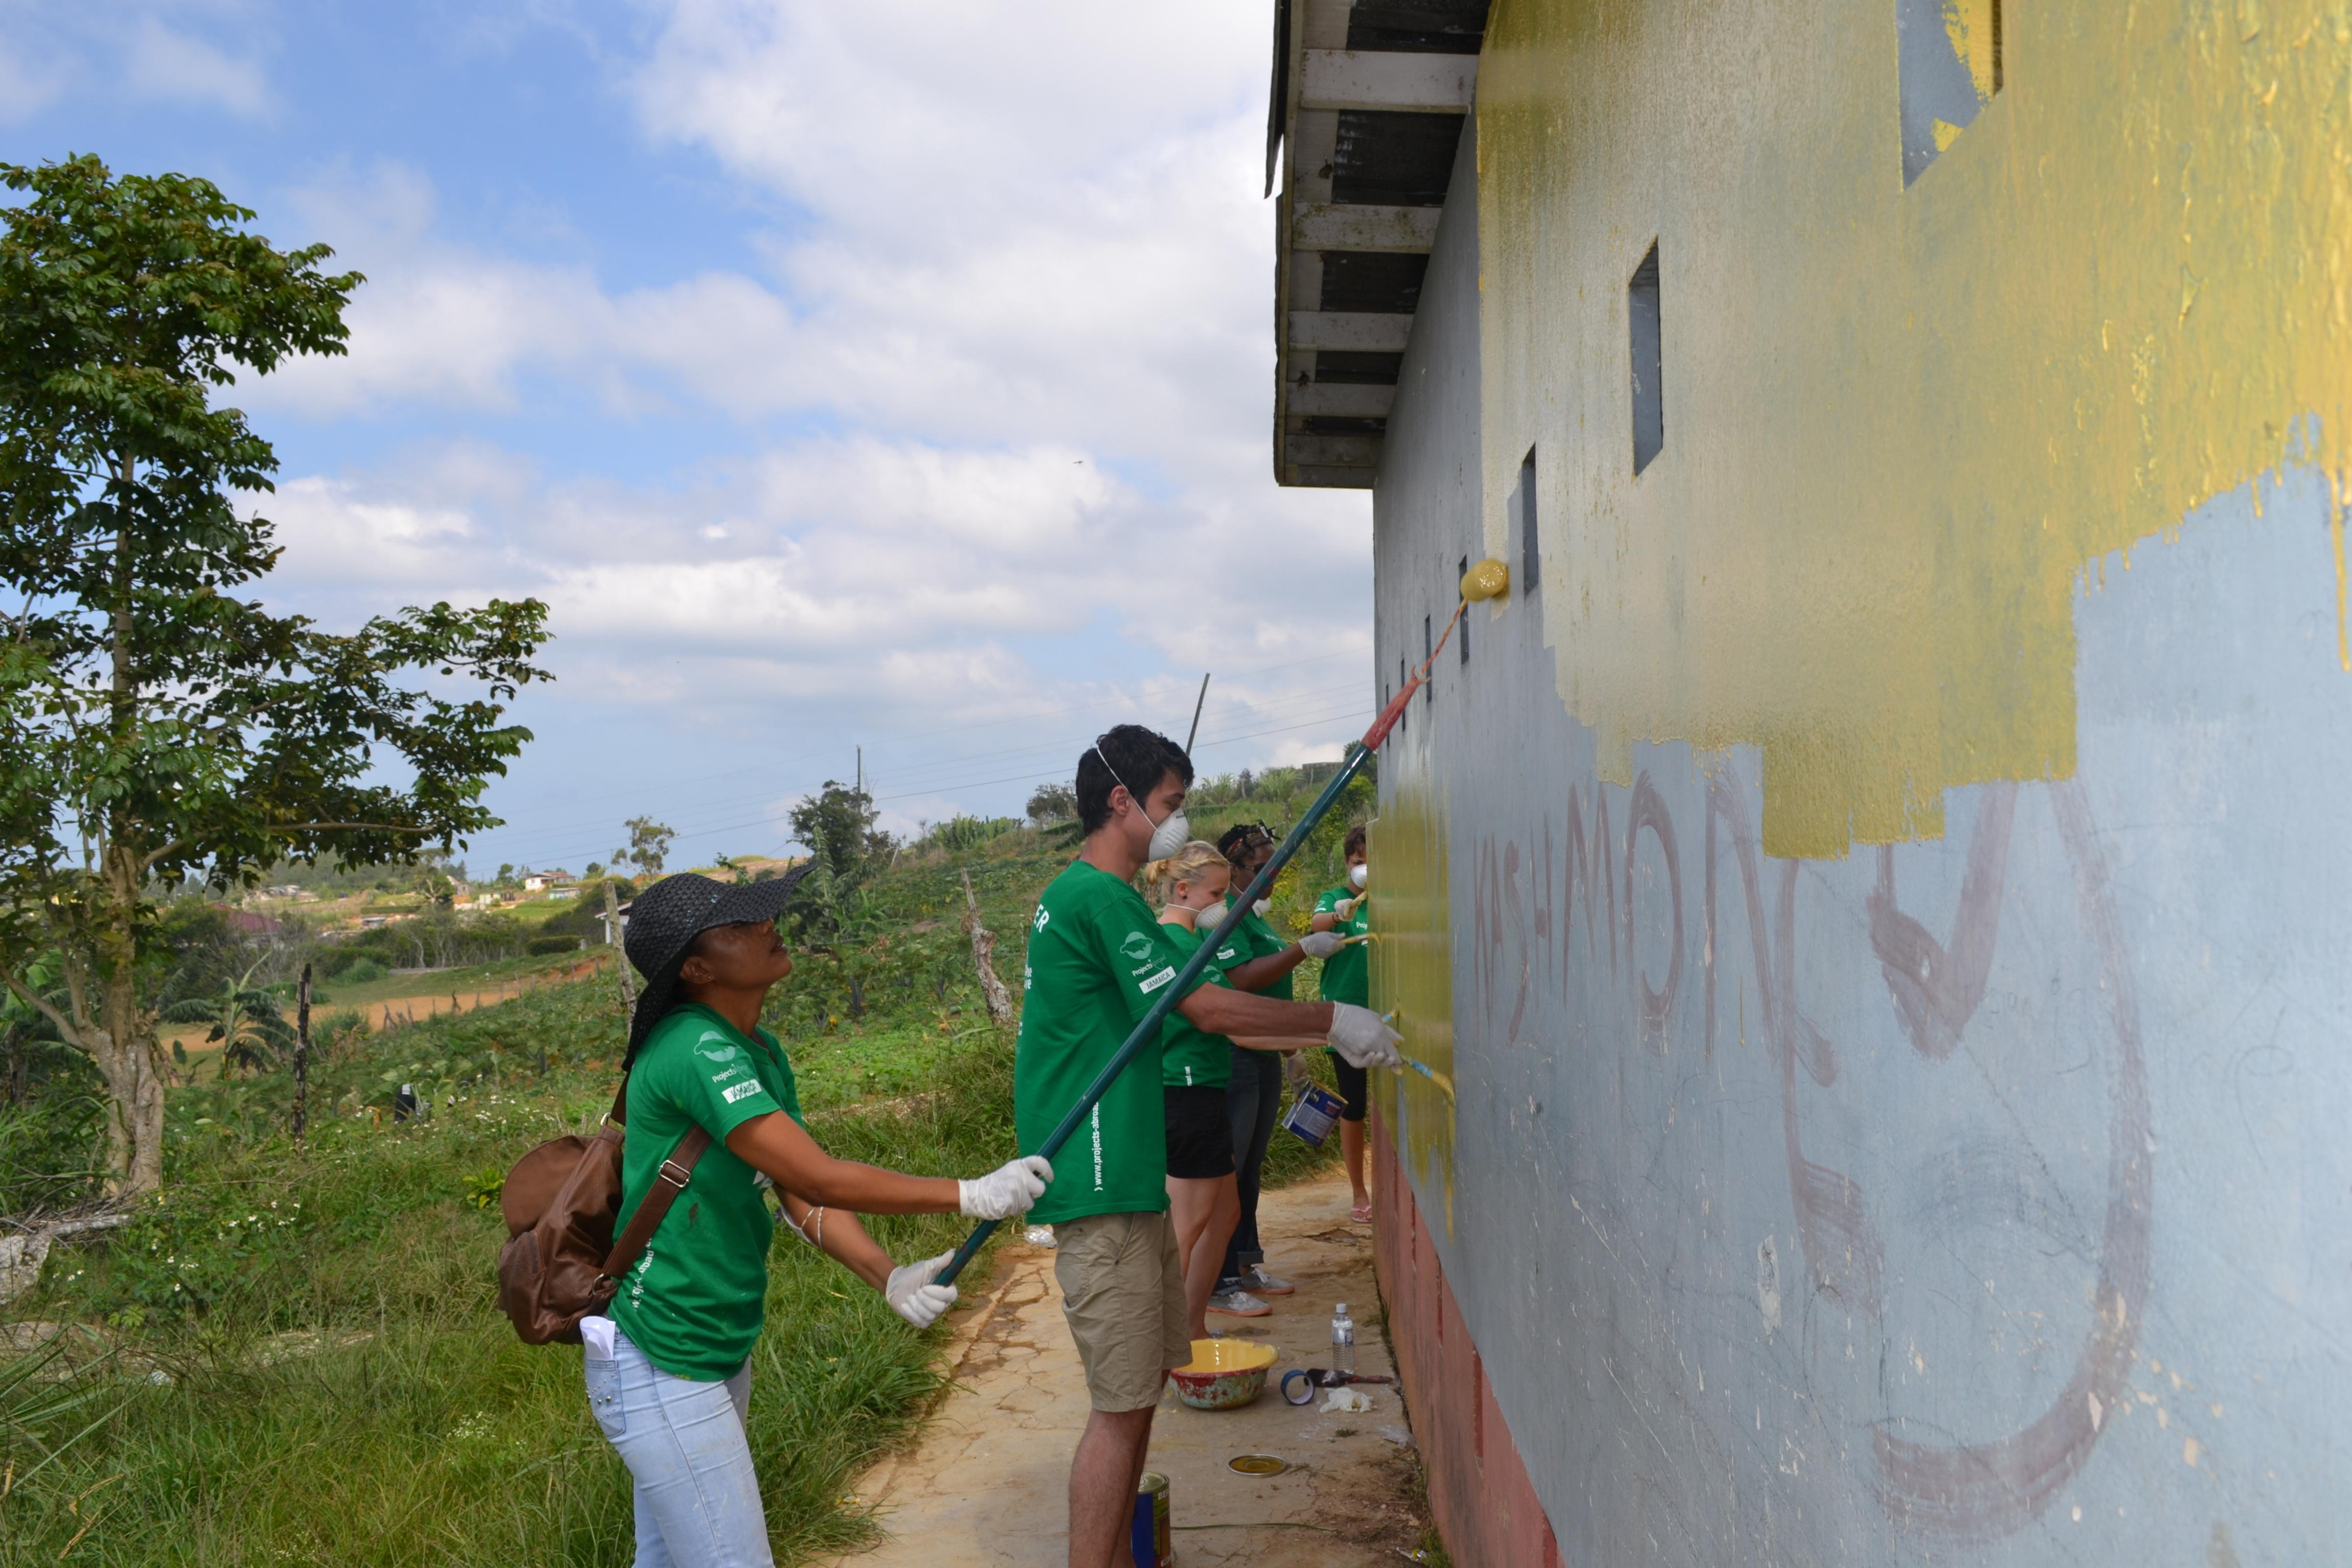 A group of Projects Abroad volunteers help to paint a toilet facility as part of their buidling volunteer work in Jamaica.